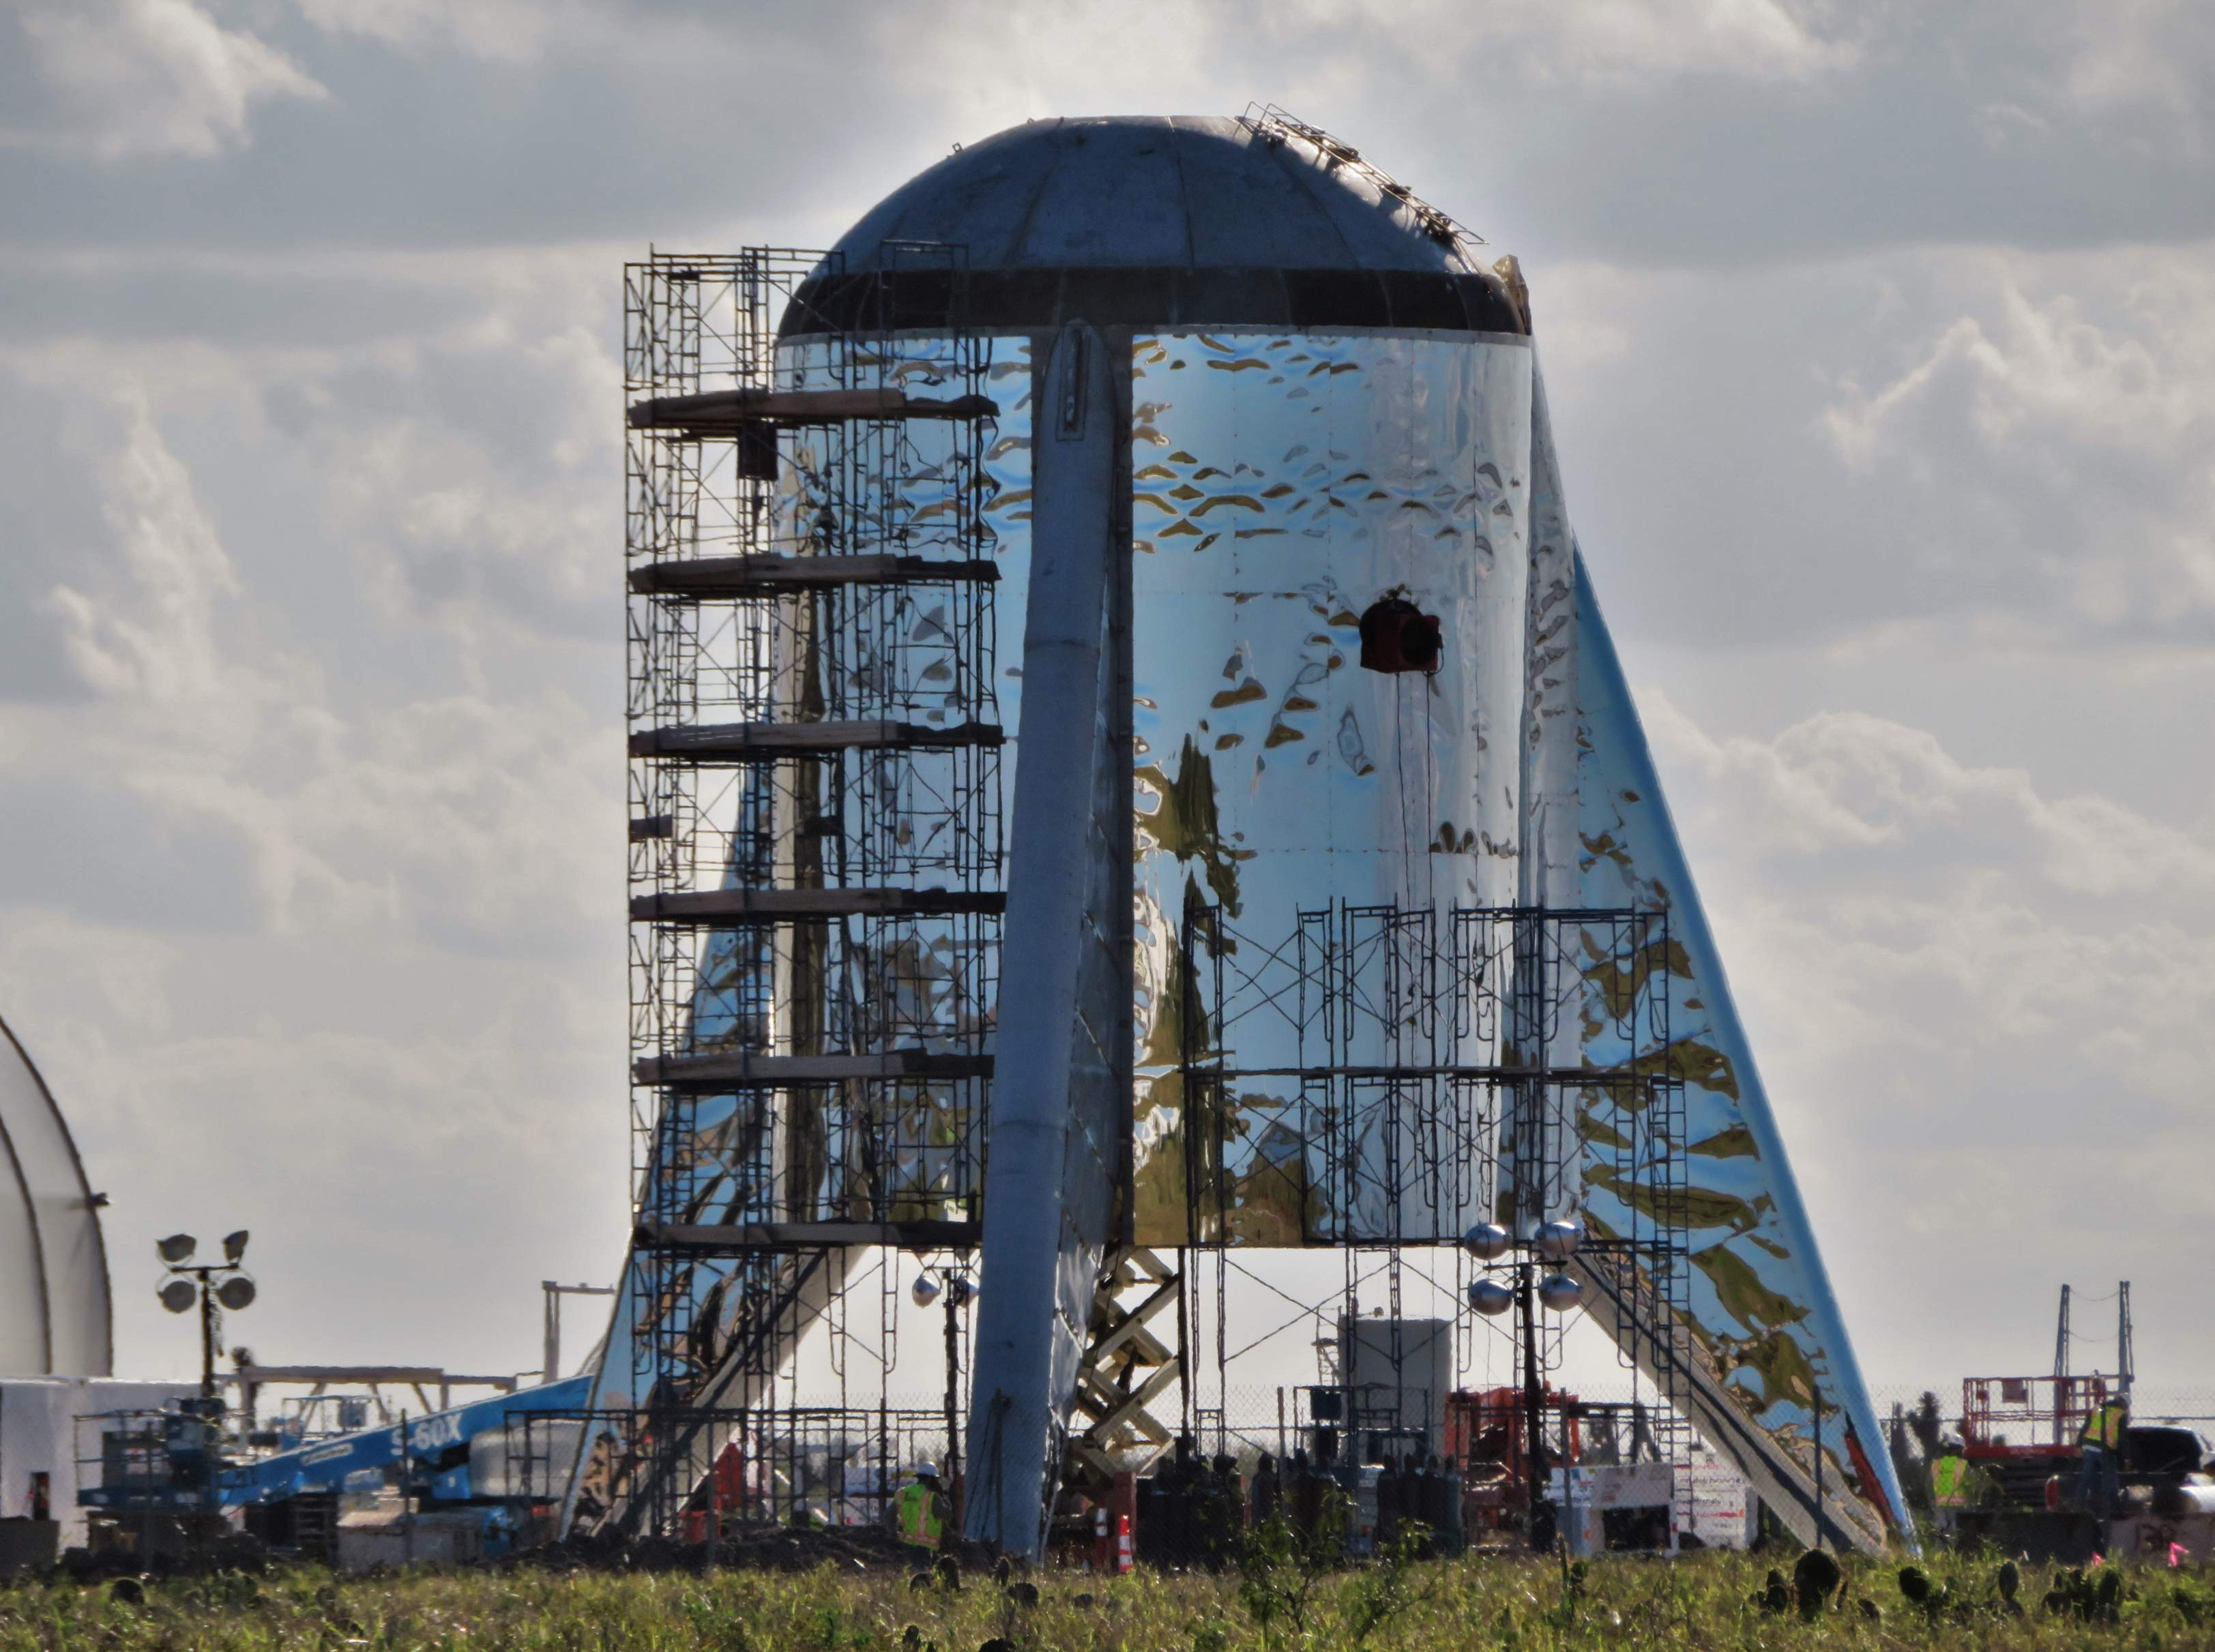 Boca Chica Starship dome work 012719 (NASASpaceflight – bocachicagal) 2 (c)